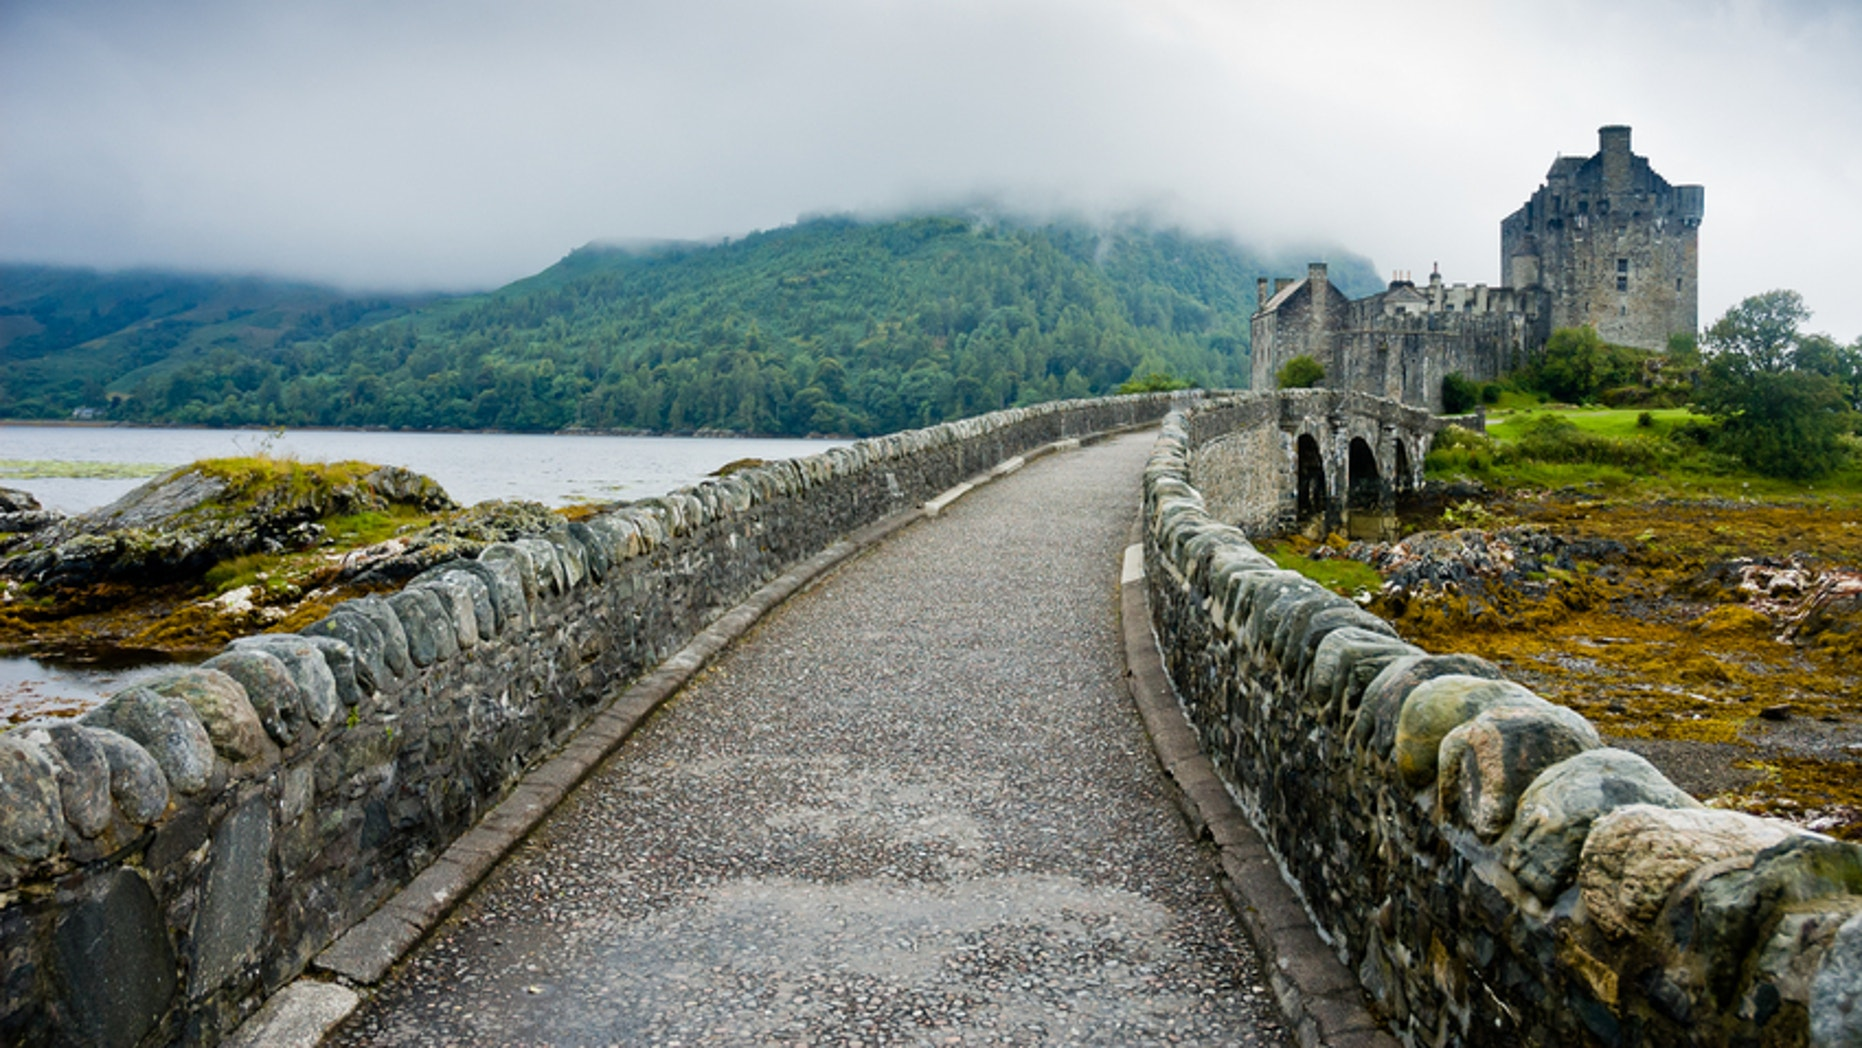 You may not want to visit these castles alone.